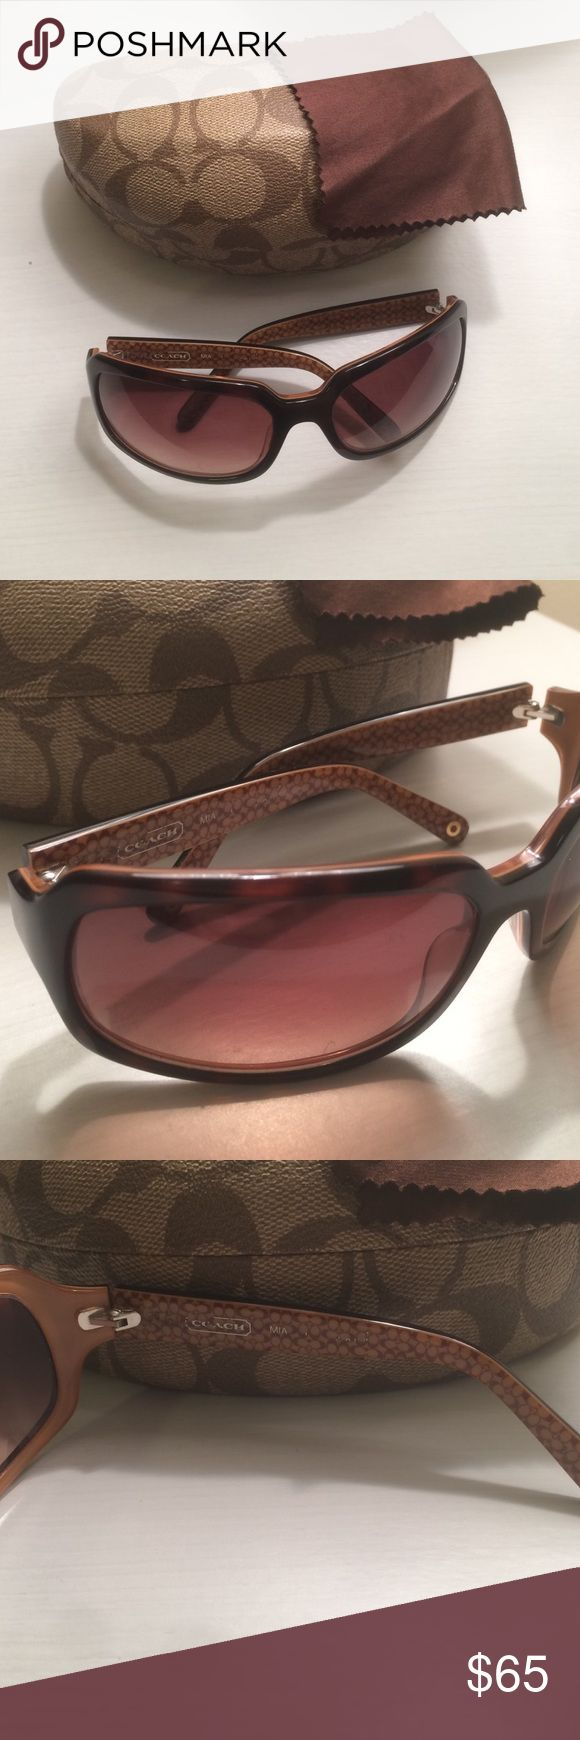 Coach MIA sunglasses Beautiful sunglasses. Comes with case and cleaning cloth. Tortoise colored. Worn and loved for years. Coach Accessories Sunglasses